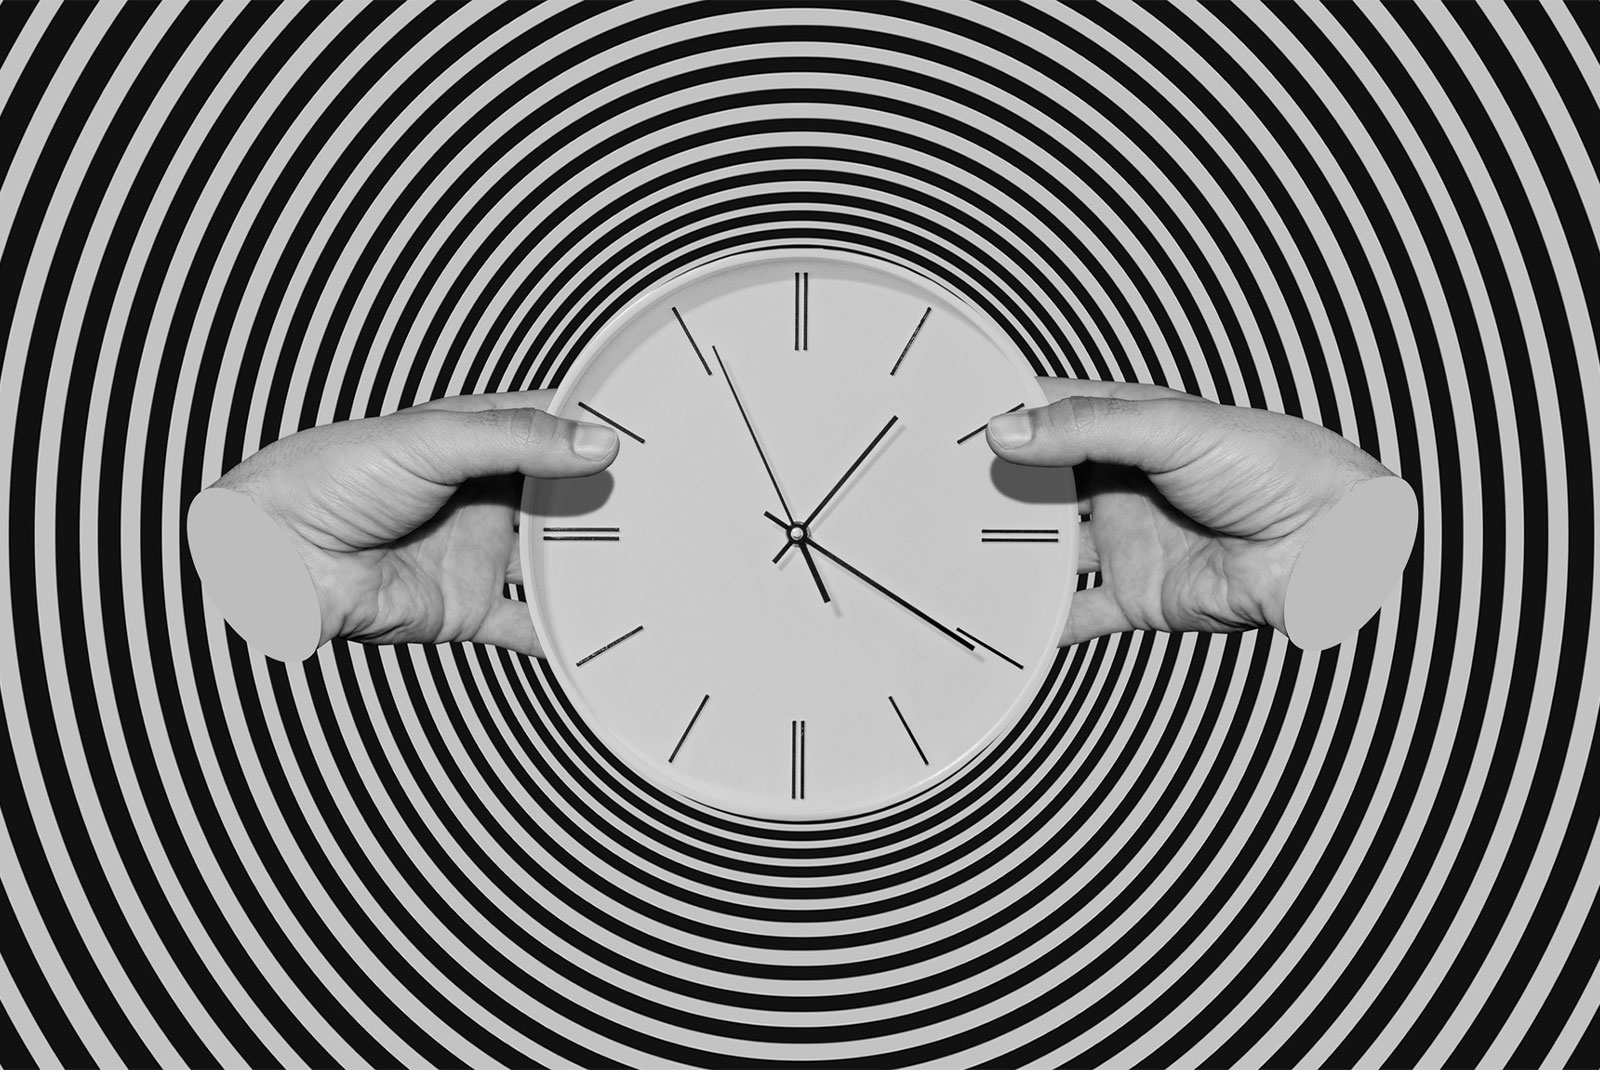 hypnotic black and white image of two hands holding a clock